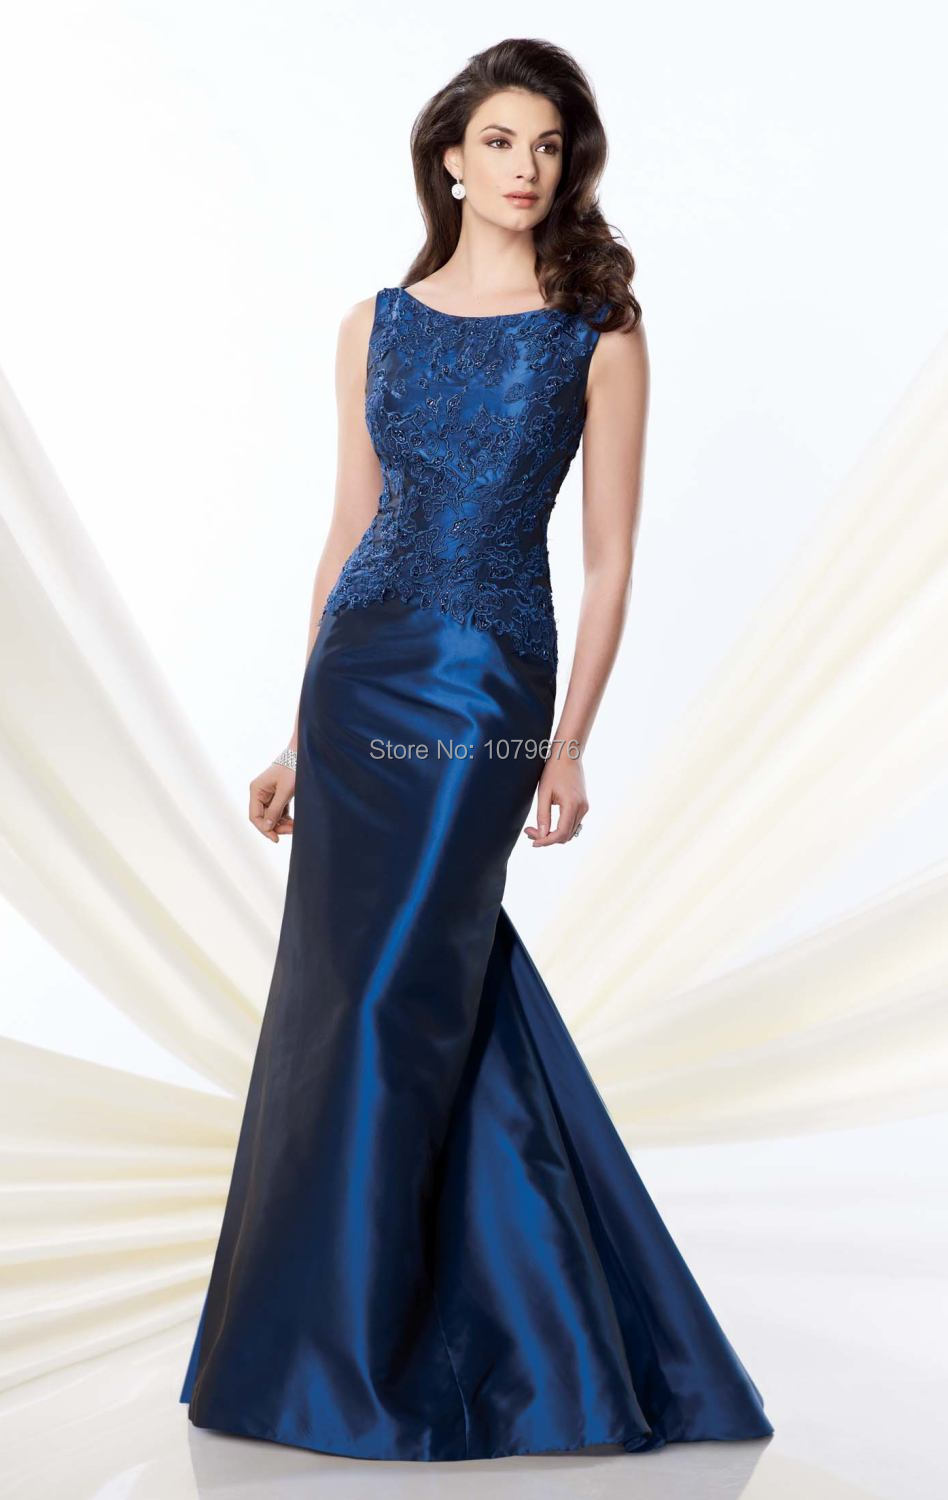 7db1c9fd8e Get Quotations · 2015 Modest Navy Blue Scoop Cap Sleeves Lace Beaded Mother  of the Bride Dress Gown Long